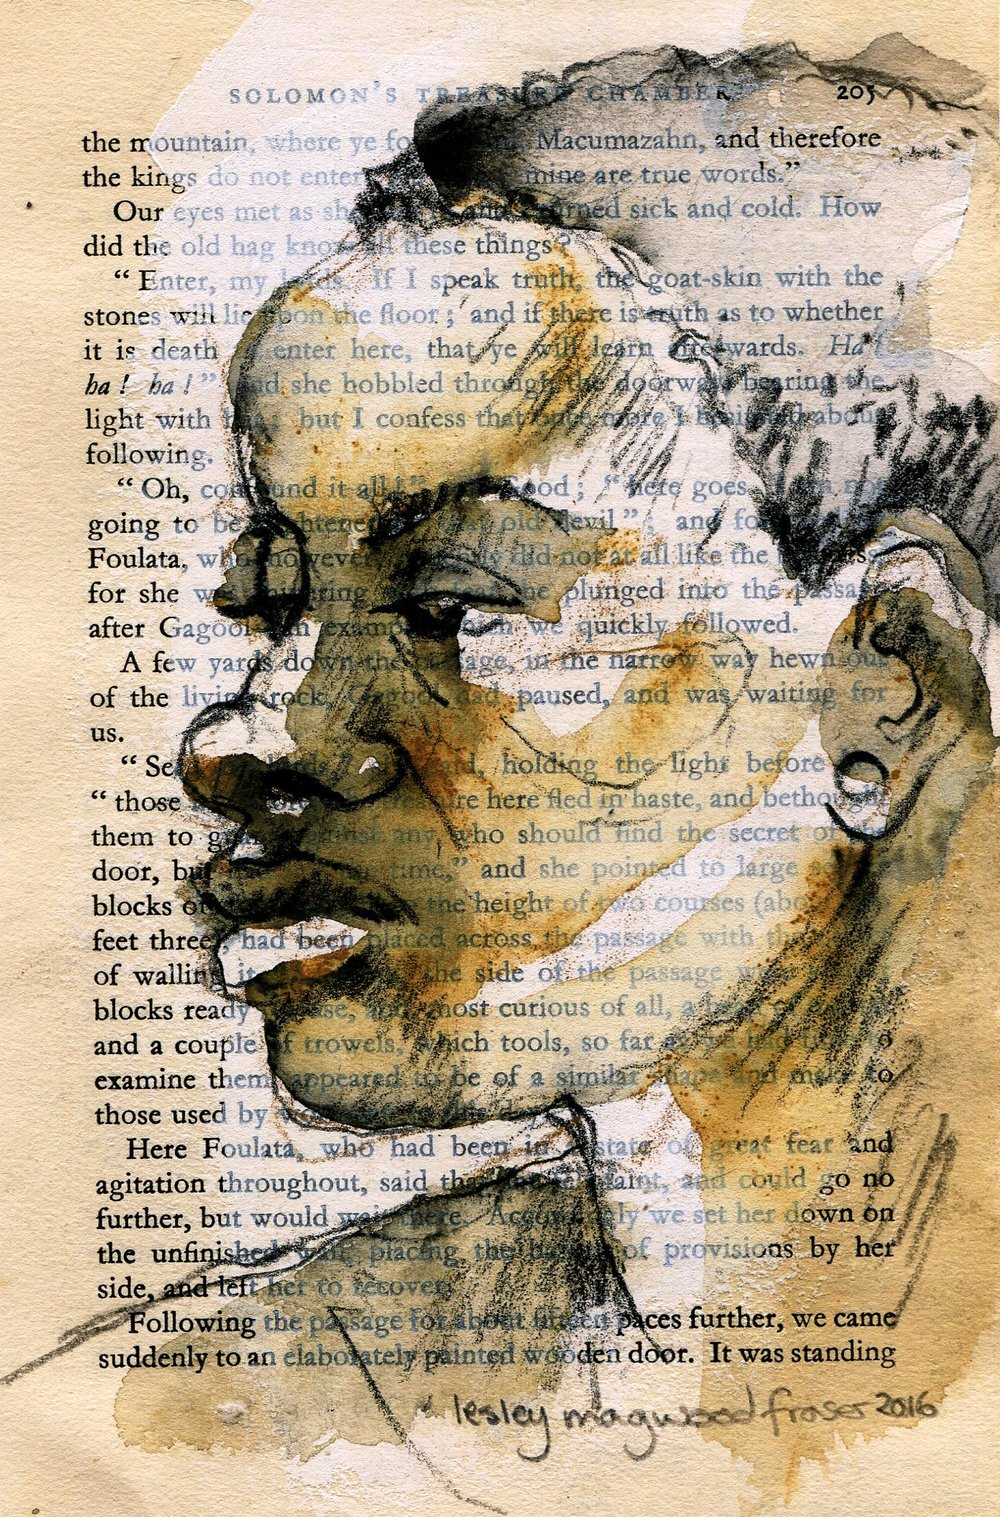 76b Lesley  Magwood Fraser, Promise Page 205, Aquarelle wash on book pages